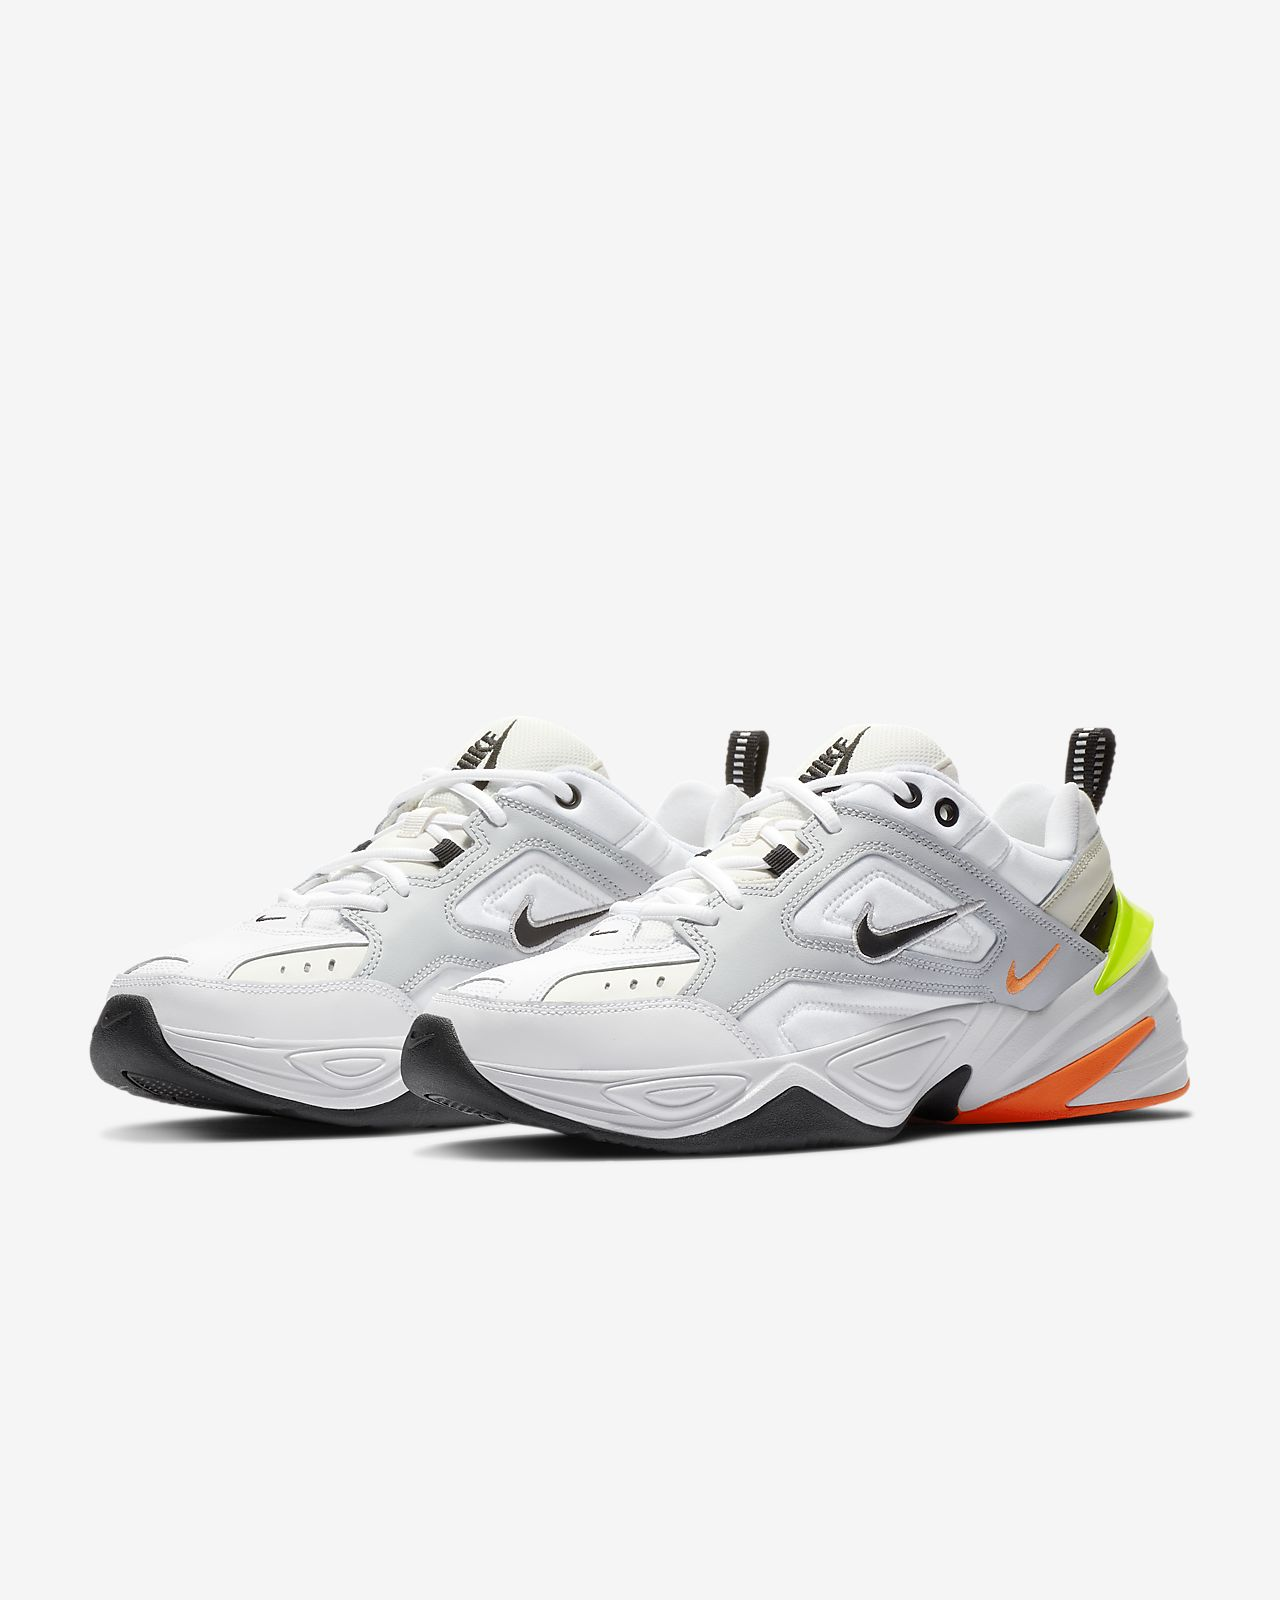 timeless design dad97 b4669 ... Chaussure Nike M2K Tekno pour Homme